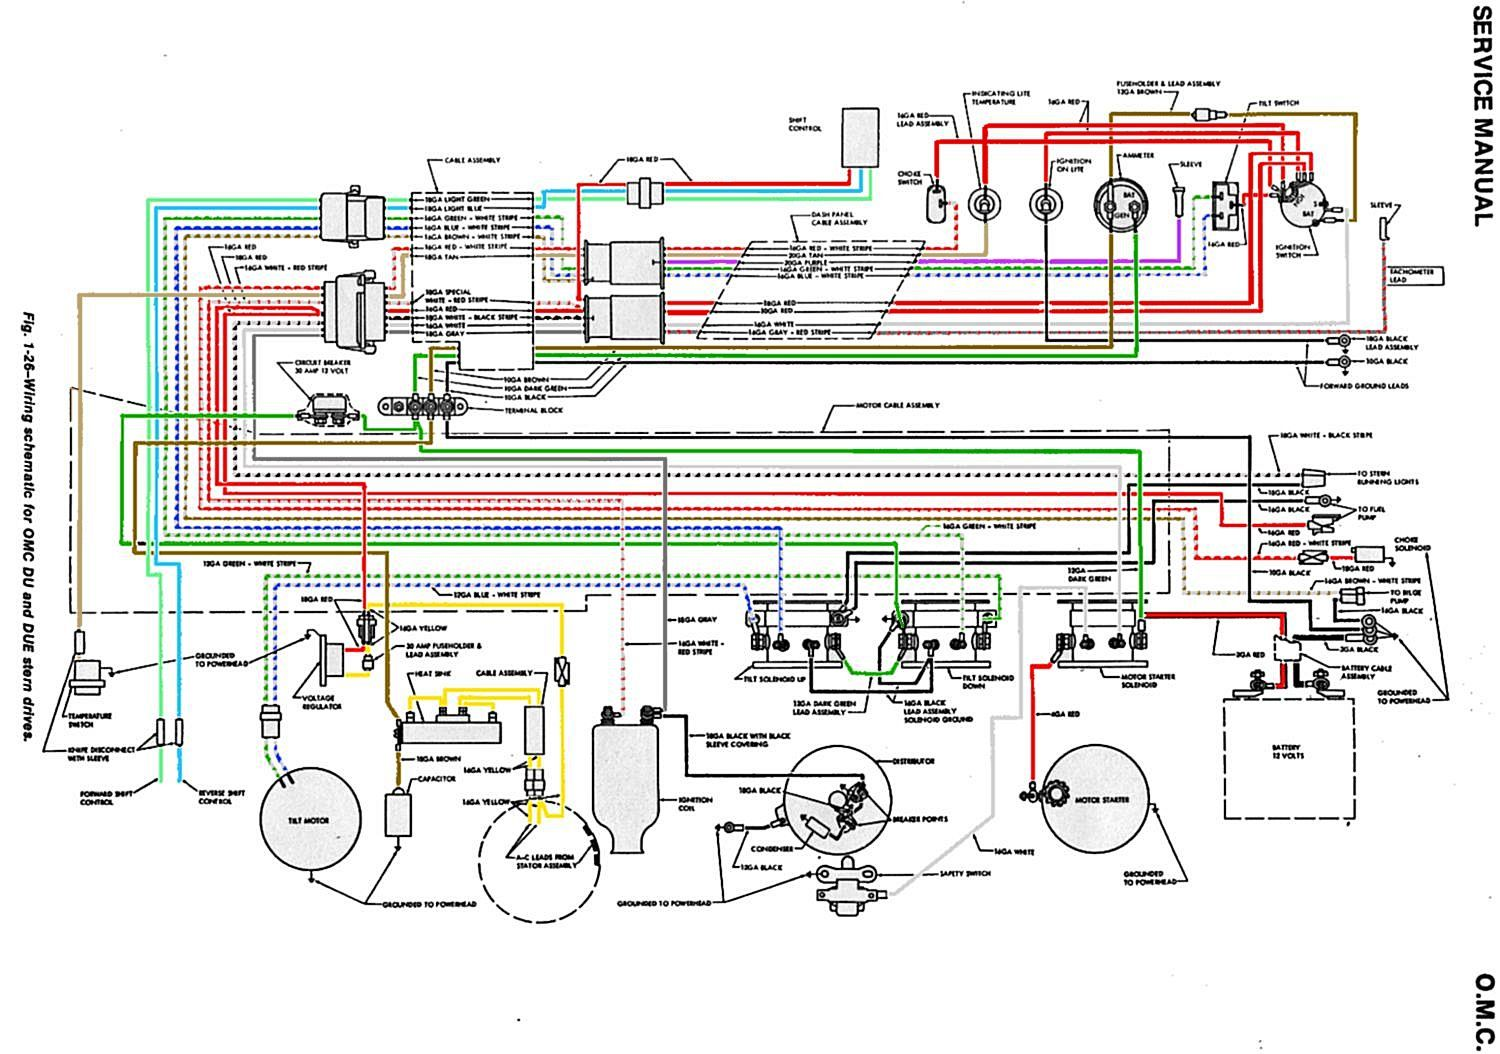 65 68_OMC_Wiring_Schematic schematic and wiring diagram hilti t500 wiring and schematic schematic and wiring diagrams at bakdesigns.co